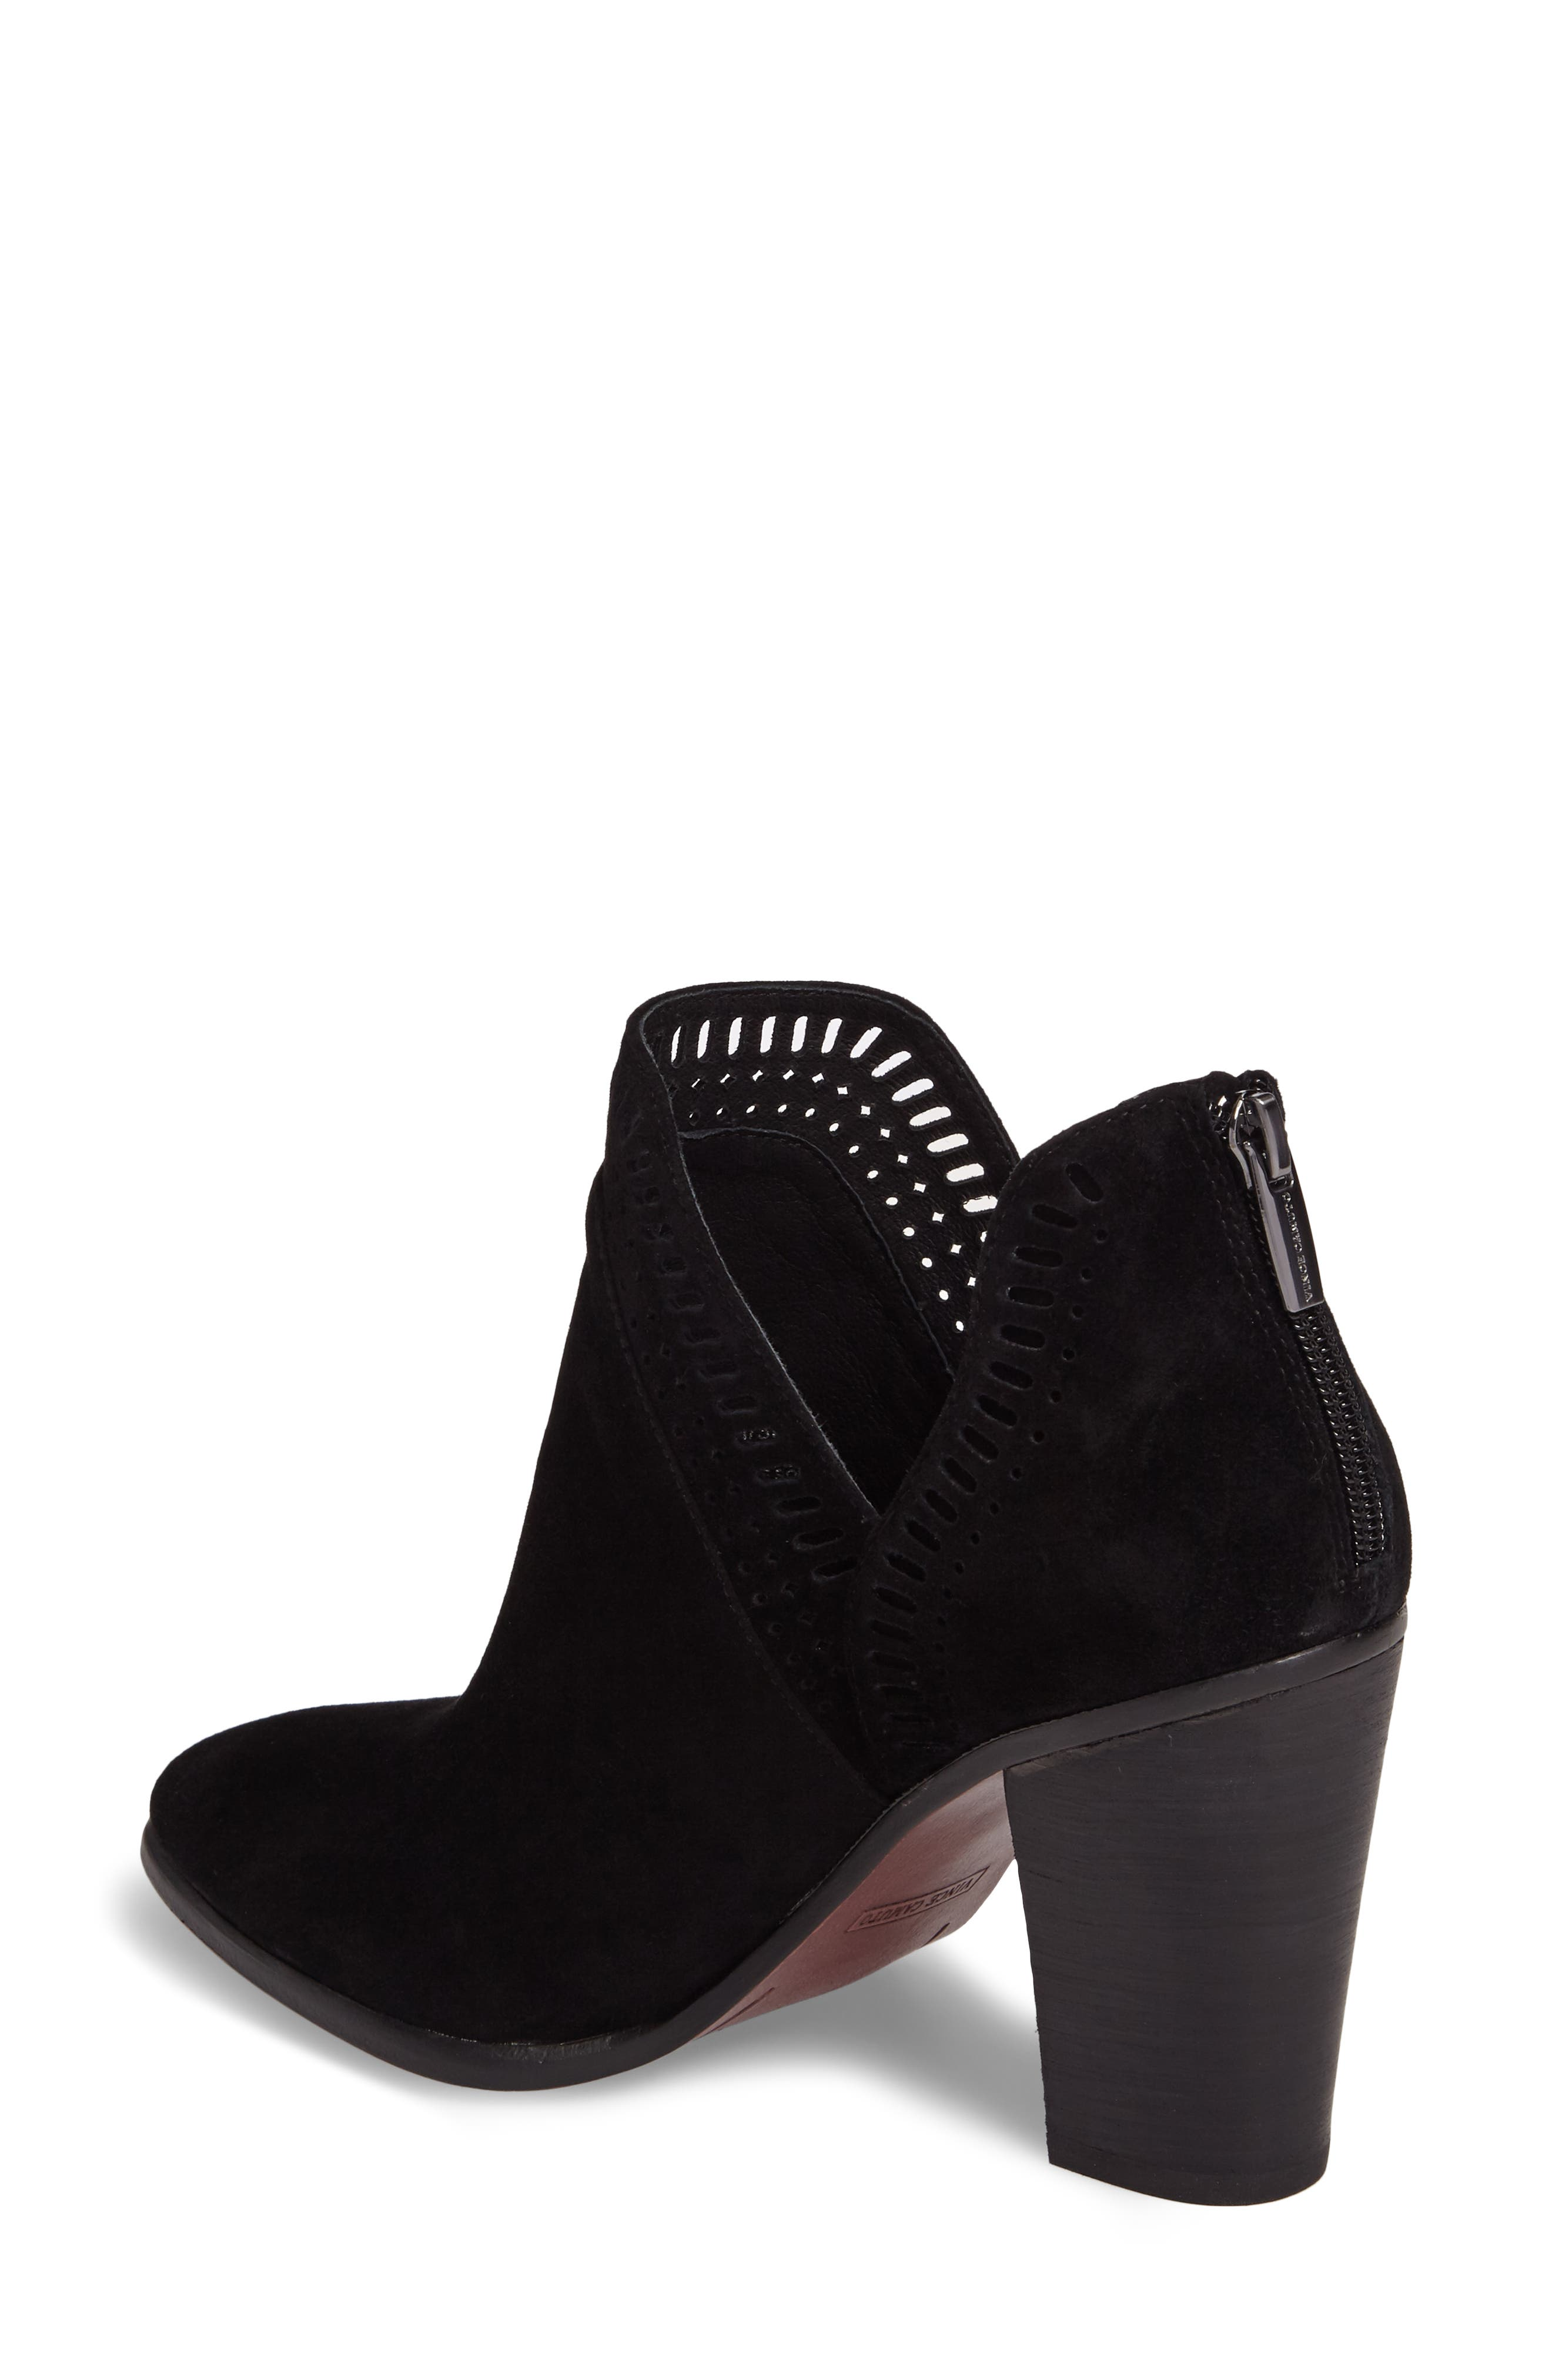 VINCE CAMUTO, Fileana Split Shaft Bootie, Alternate thumbnail 2, color, 001